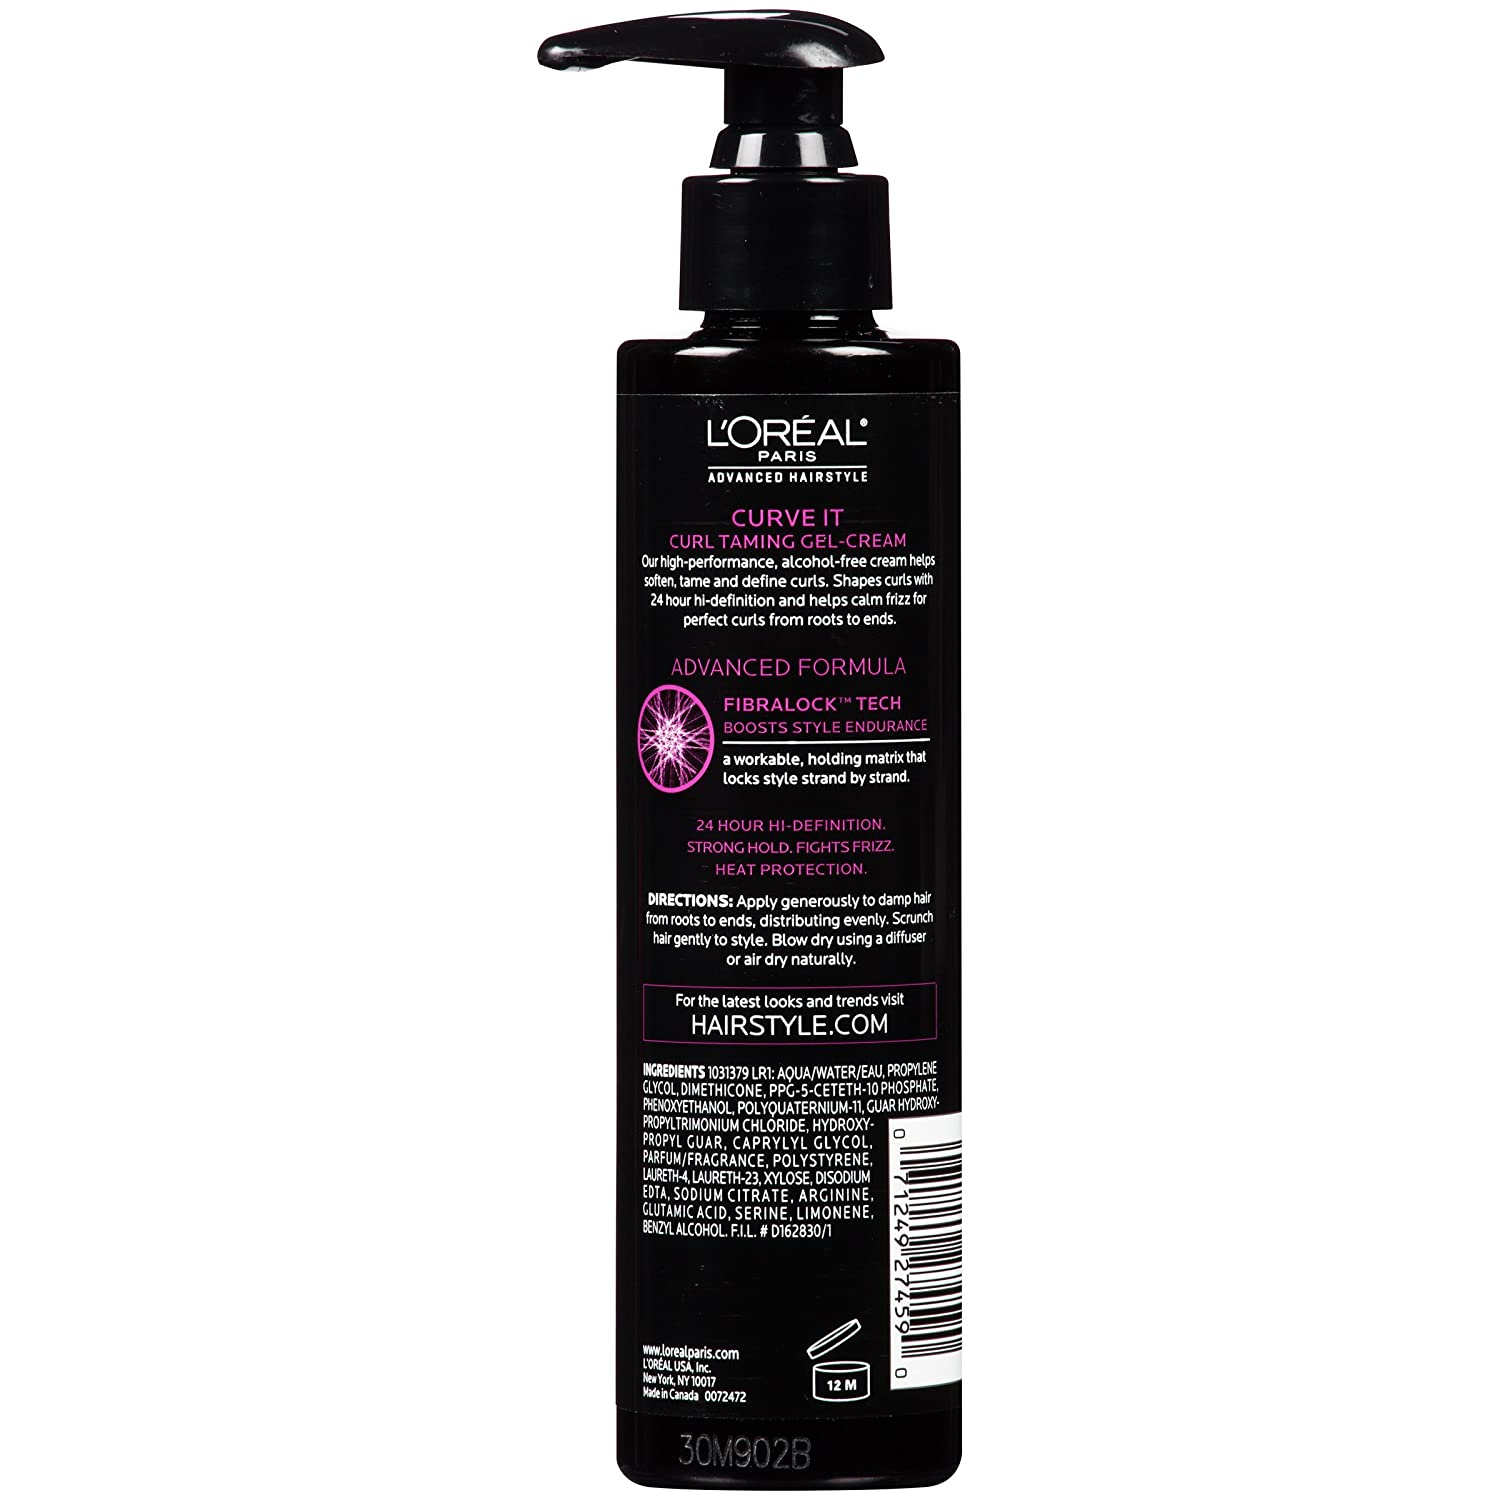 L Or al Paris Advanced Hairstyle CURVE IT Curl Taming Gel Cream, 6.8 fl. oz.